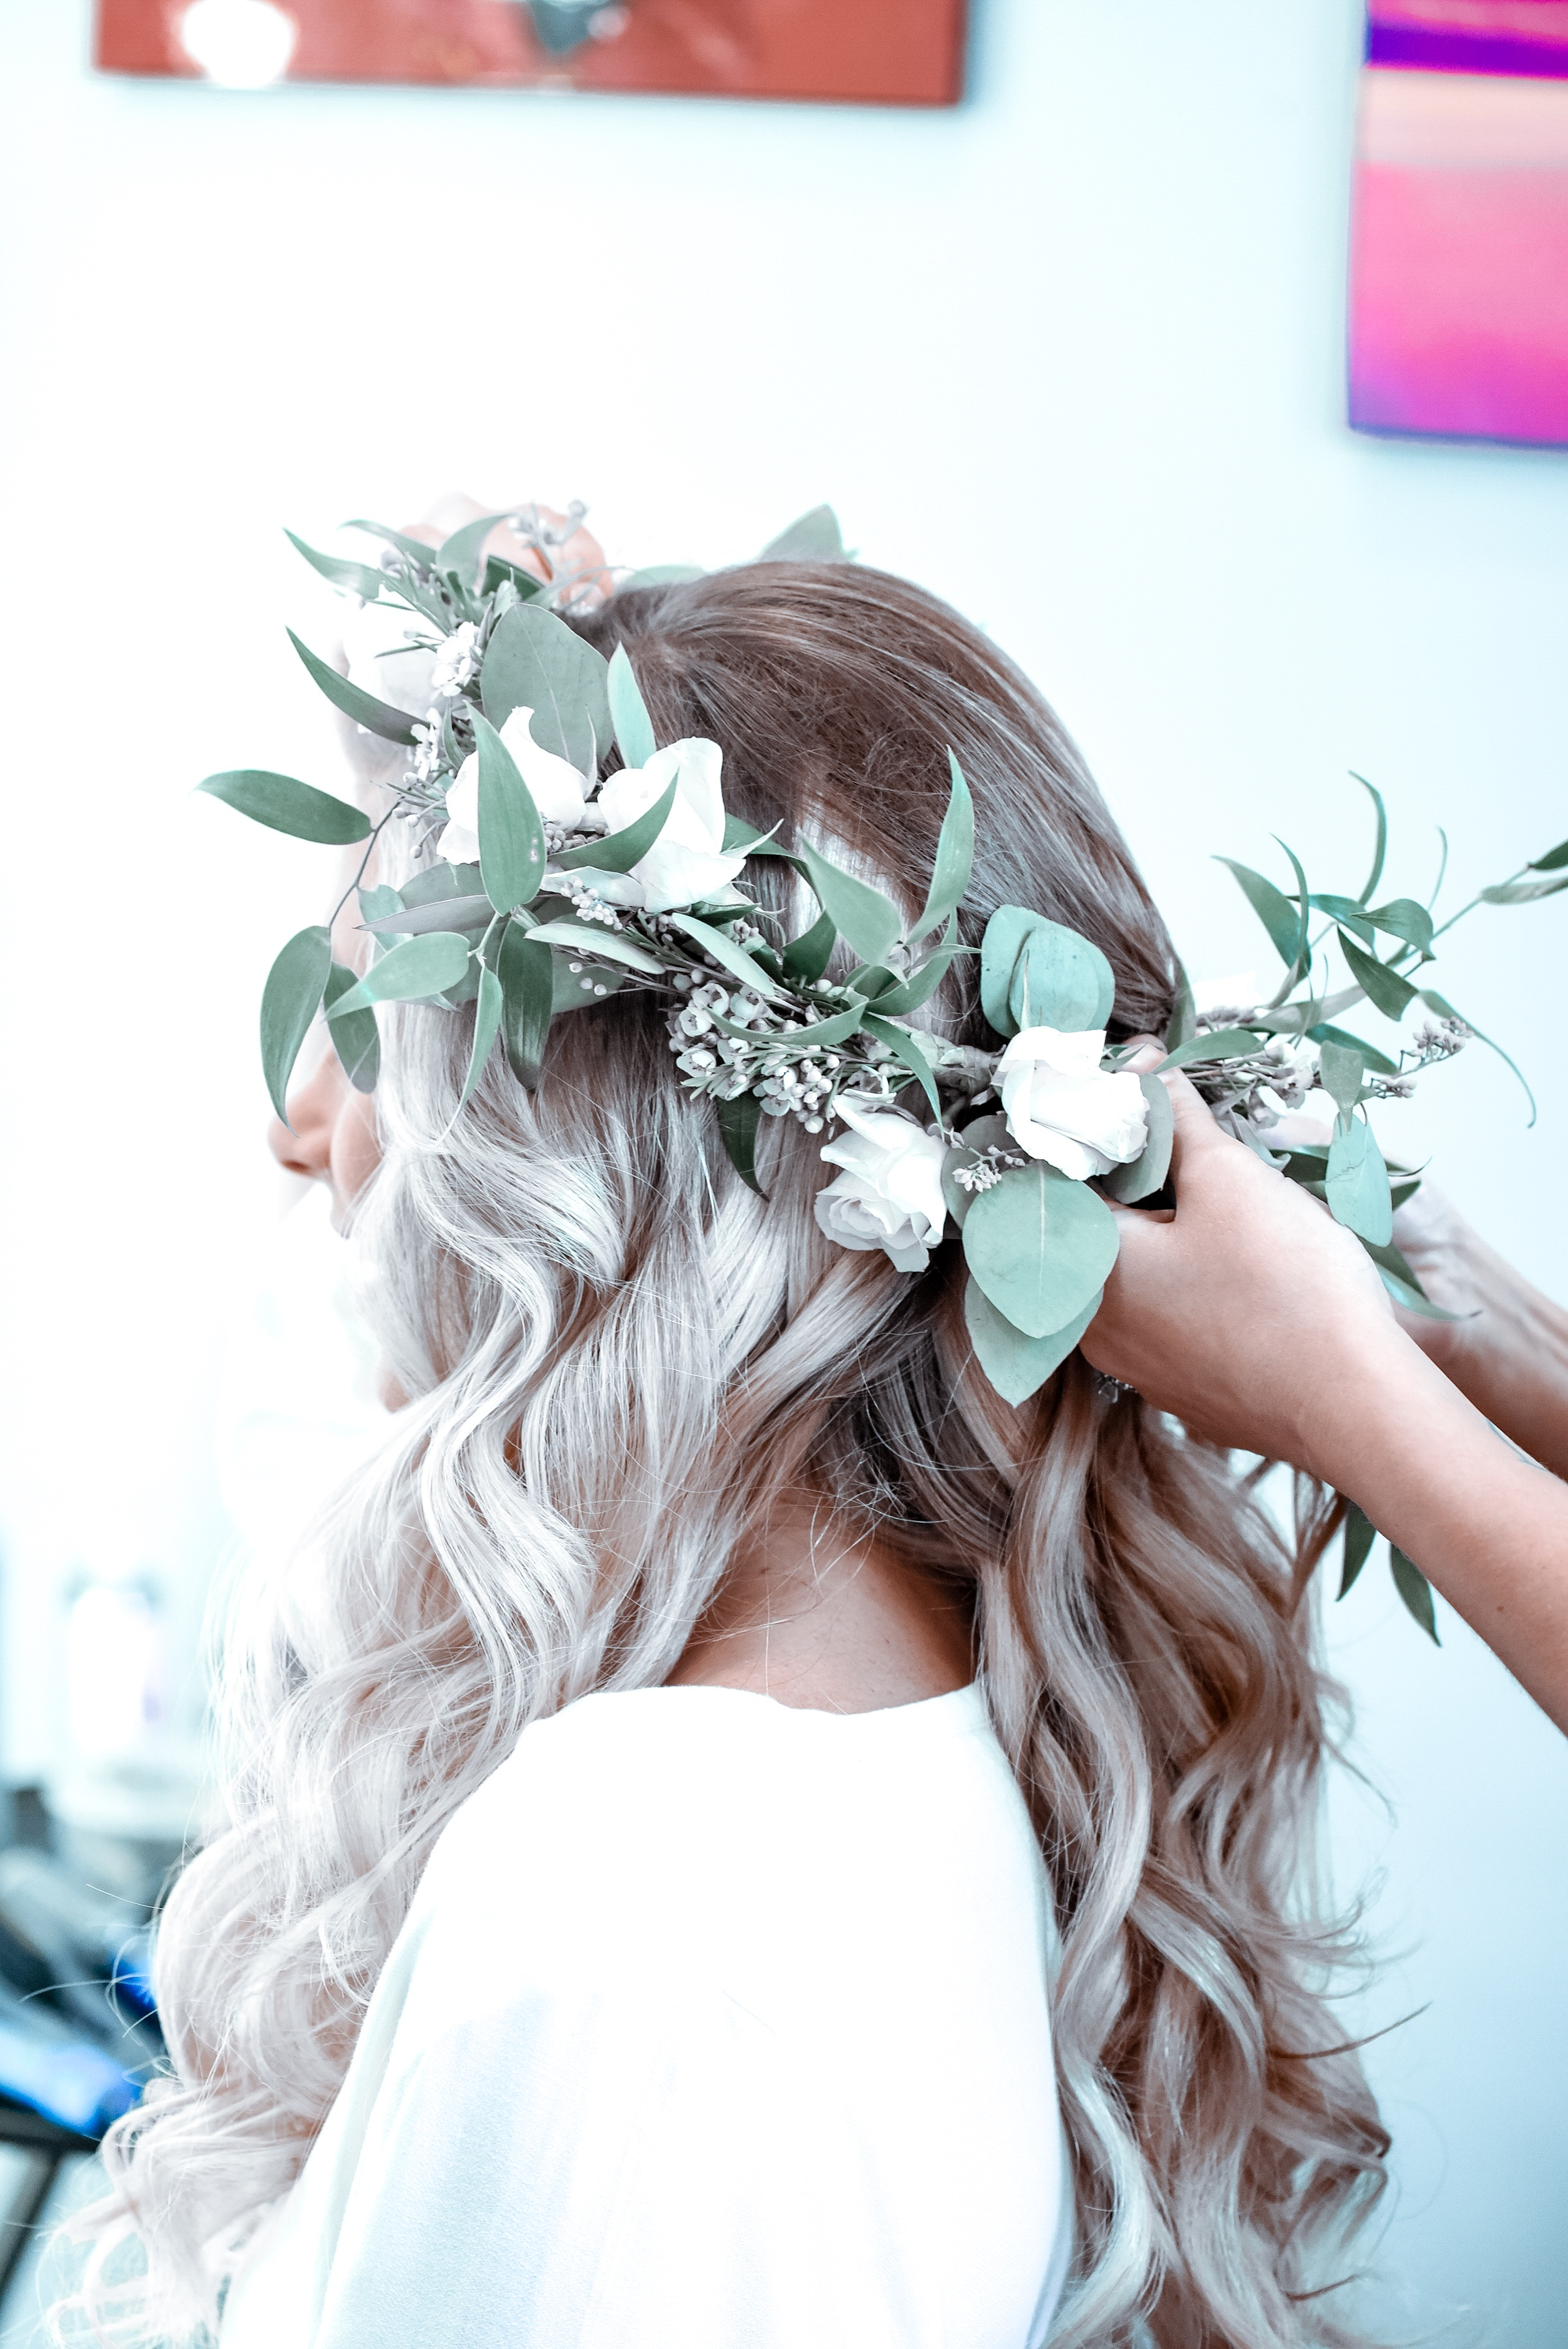 Expertly fitting my flower crown to my head! (Made by my florist!!  DayDream Floral )